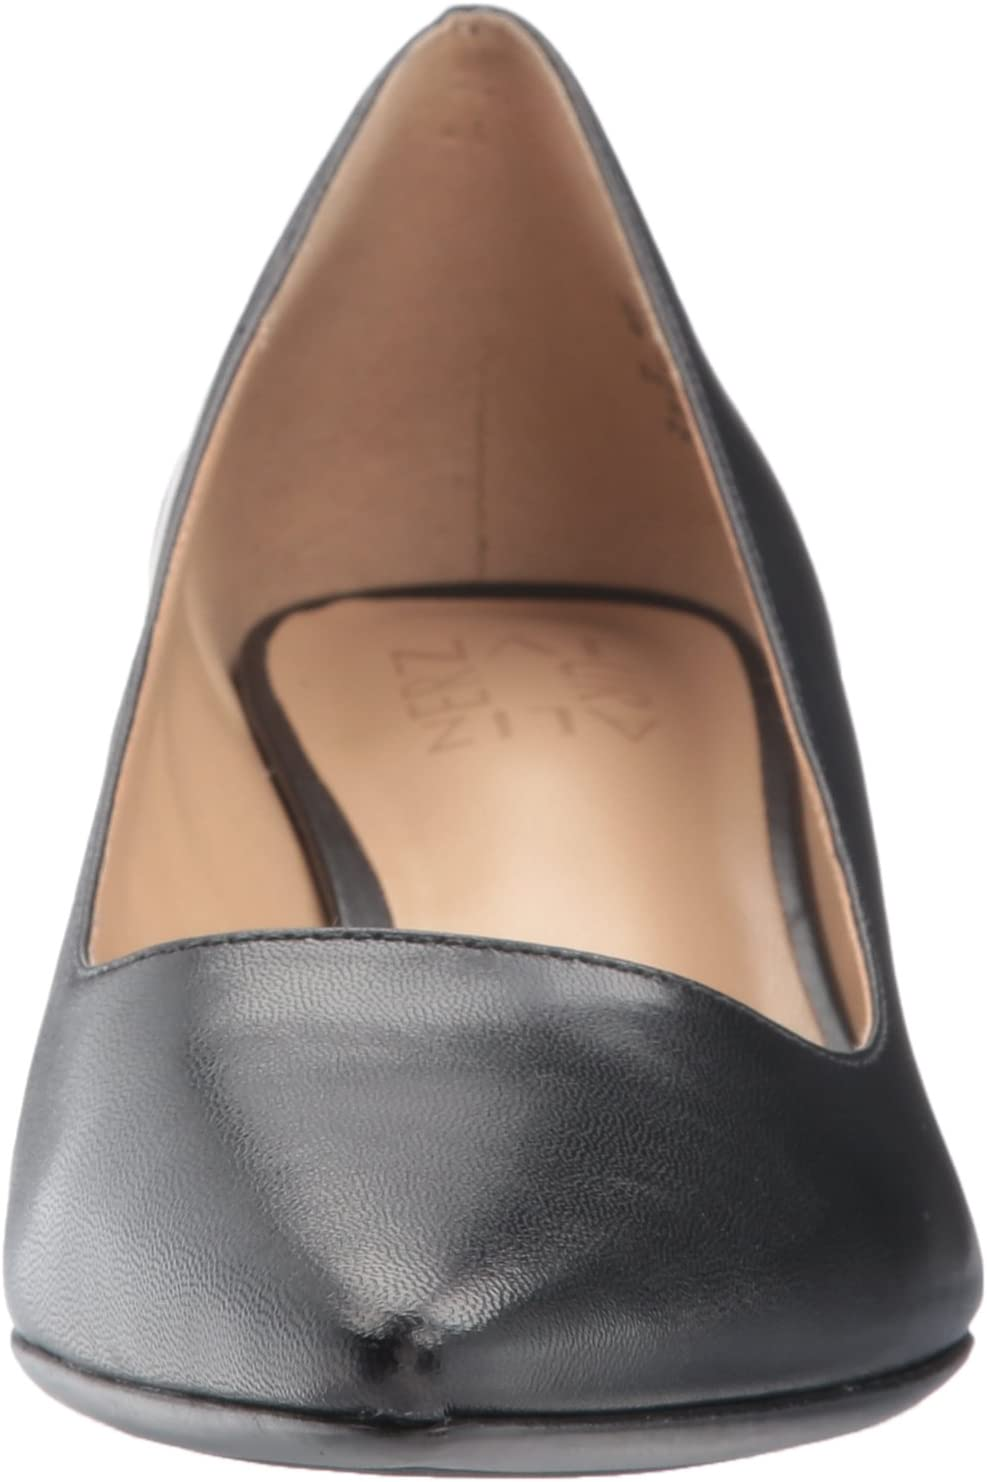 Naturalizer Women's Pippa Court Shoes Black (Black)